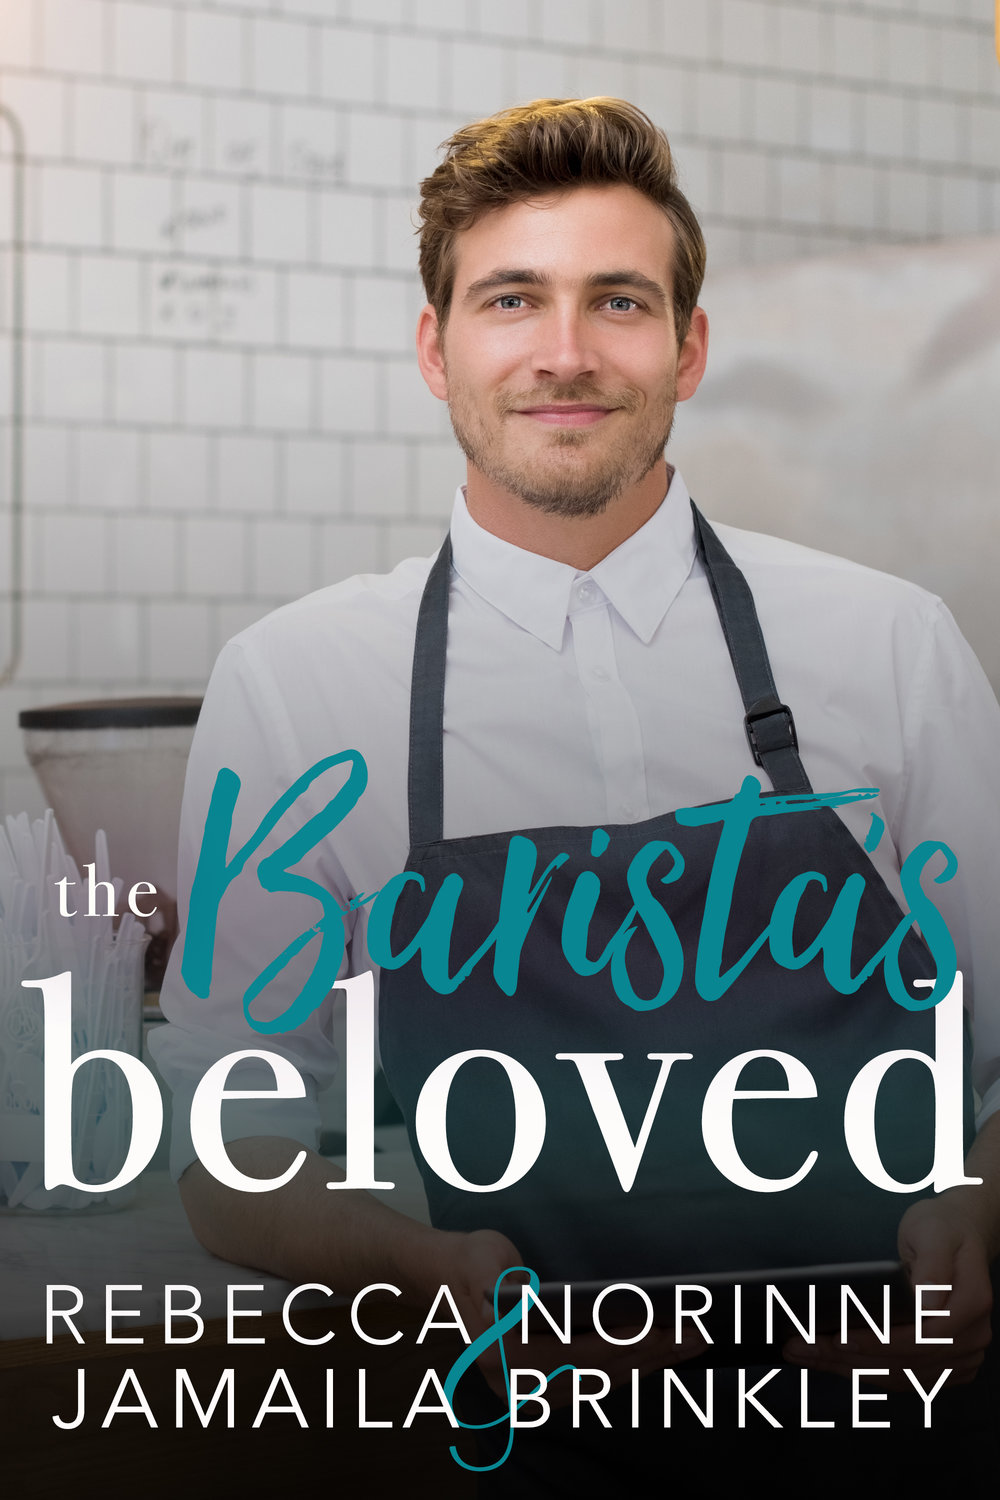 THE BARISTA'S BELOVED - The Hollow Bean serves River Hill's finest coffee, but its newest barista isn't quite making the grade. Ben Worthington's career as a lawyer hasn't made him happy. In fact, it hasn't made him anything but stressed. So he's come to River Hill, where his oldest friend lives, to relax and figure out where his life went wrong. A job at the local coffee shop to keep himself busy and pay the rent on the cheapest apartment he can find is the perfect setup, but it turns out he forgot one thing: he has no idea how to make coffee.Claire Robertson is the nicest person in River Hill. She fosters kittens, teaches preschool, and volunteers virtually everywhere. When she's served a cup of coffee so bad that she has no choice but swallow her guilt and actually send it back, she's horrified to discover that the barista who made it is a) in danger of losing his job and b) the sexiest man she's ever met. Not even her standard 30% tip for terrible service can save this situation.Between them, Ben and Claire can probably salvage his job and her conscience, but coping with the growing attraction between them is something else. Add in complications from everything from cats to corporate law, and when crunch time comes, they'll have to decide exactly what's worth saving.